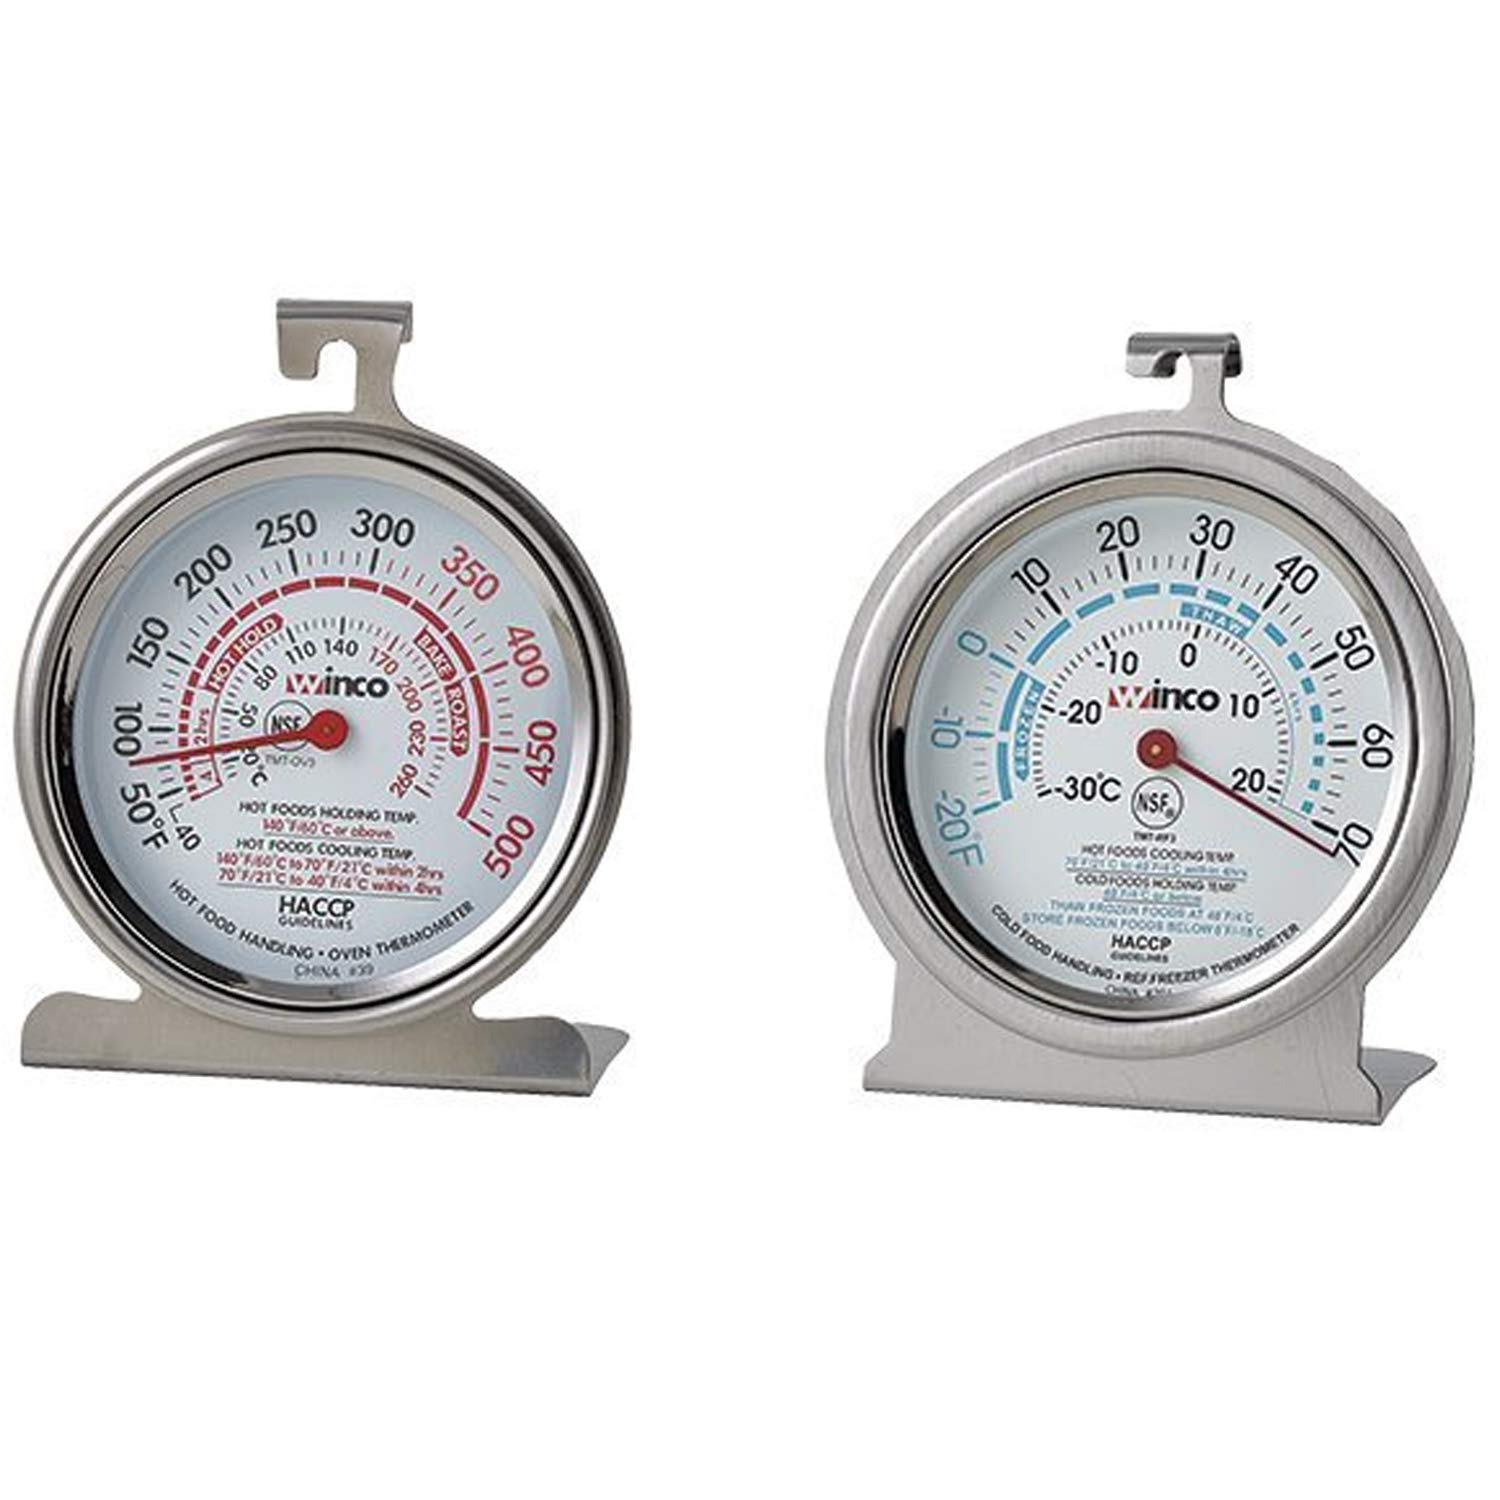 Culinary Depot (1) Oven Thermometer 50 500 Degrees (1) Refrigerator/Freezer thermometer 20 70 Degrees 3'' thermometer